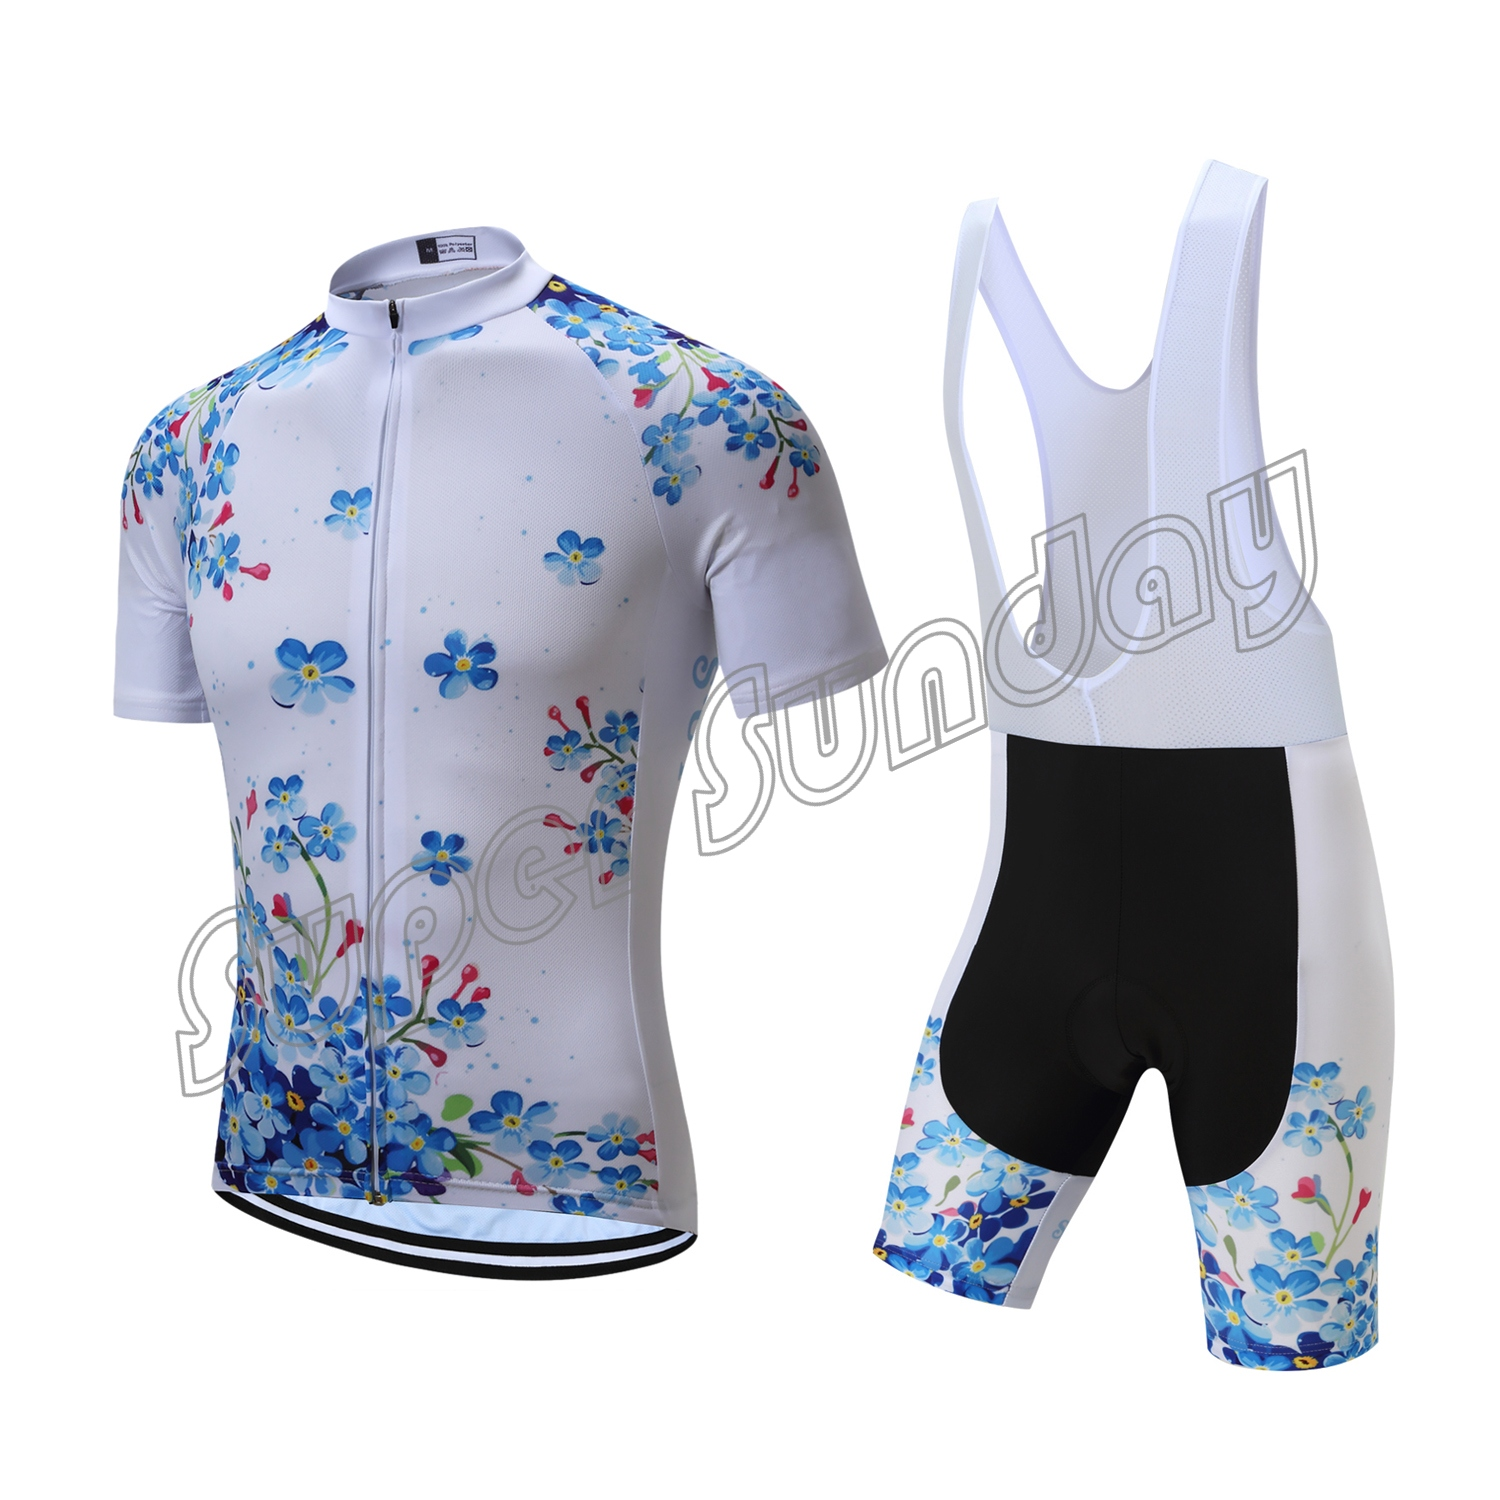 High Quality Team Cycling Jerseys Men's cycling Sportwears Short Sleeve Bicycle Racing Jersey Outdoor Suits Free Shipping SPNDT4 176 top quality hot cycling jerseys red lotus summer cycling jersey 2017s anti uv female adequate quality sleeve cycling clothin